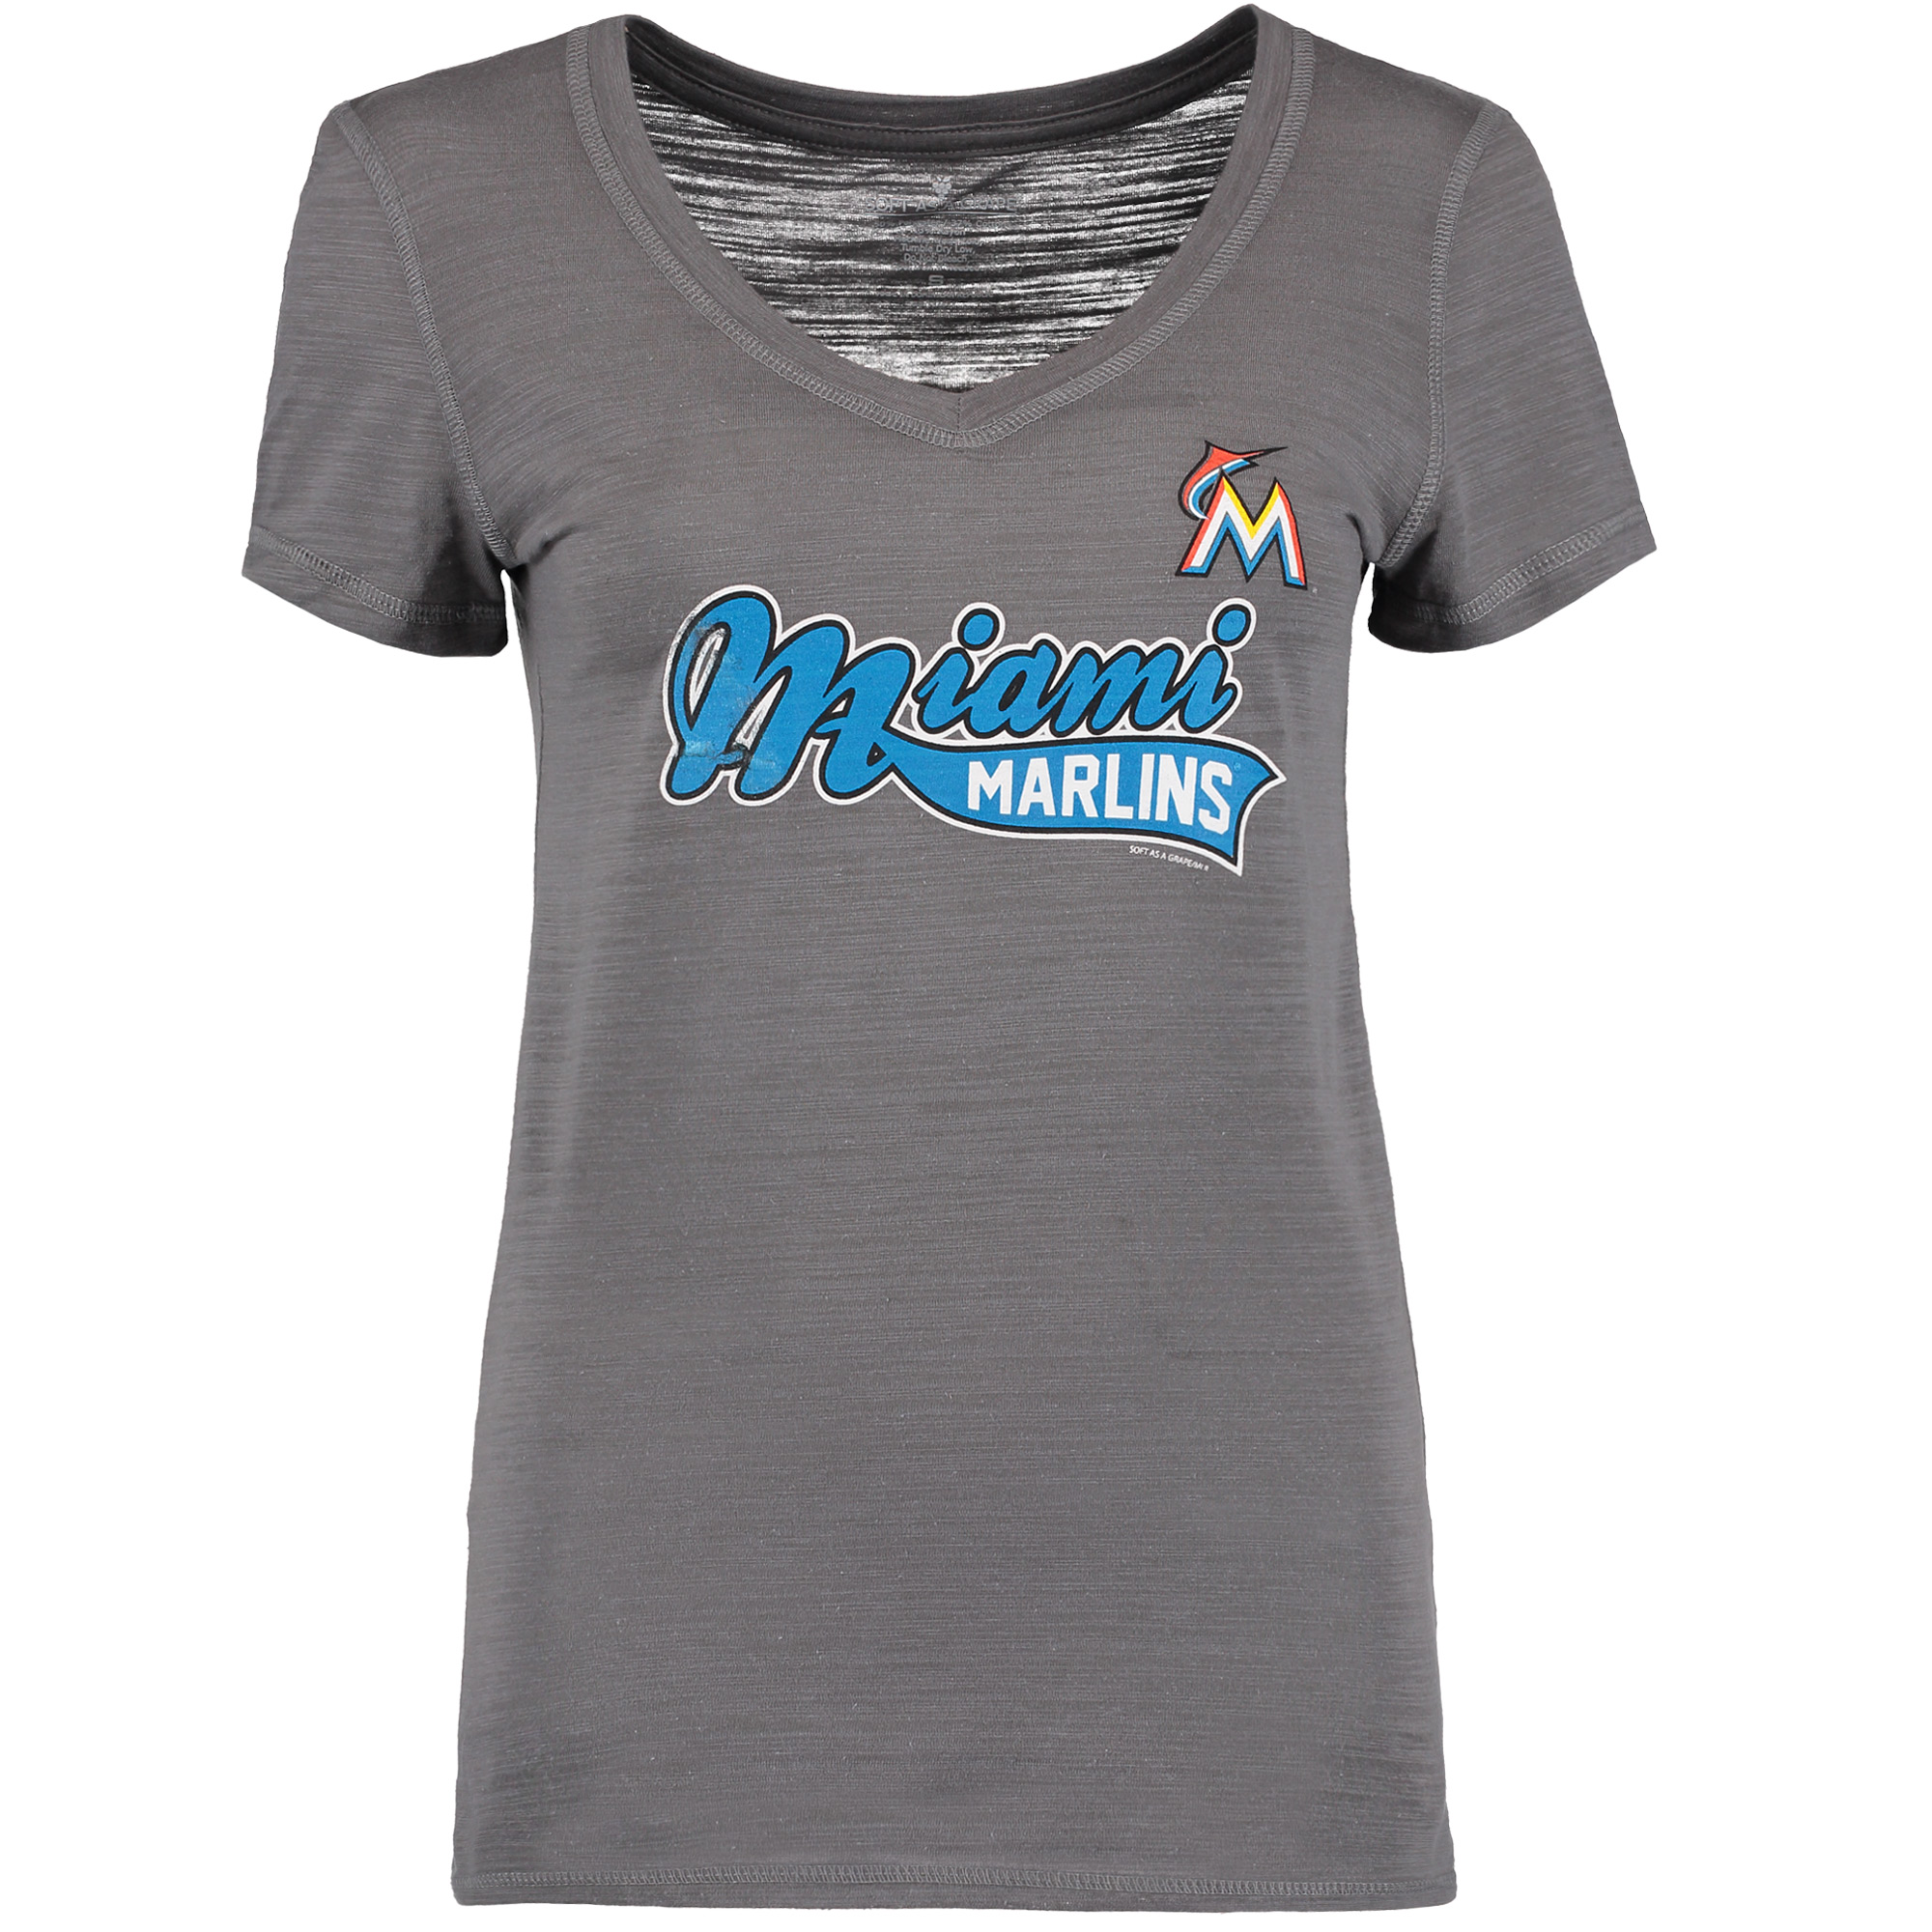 Miami Marlins Soft as a Grape Women's Multi Count V-Neck T-Shirt - Charcoal